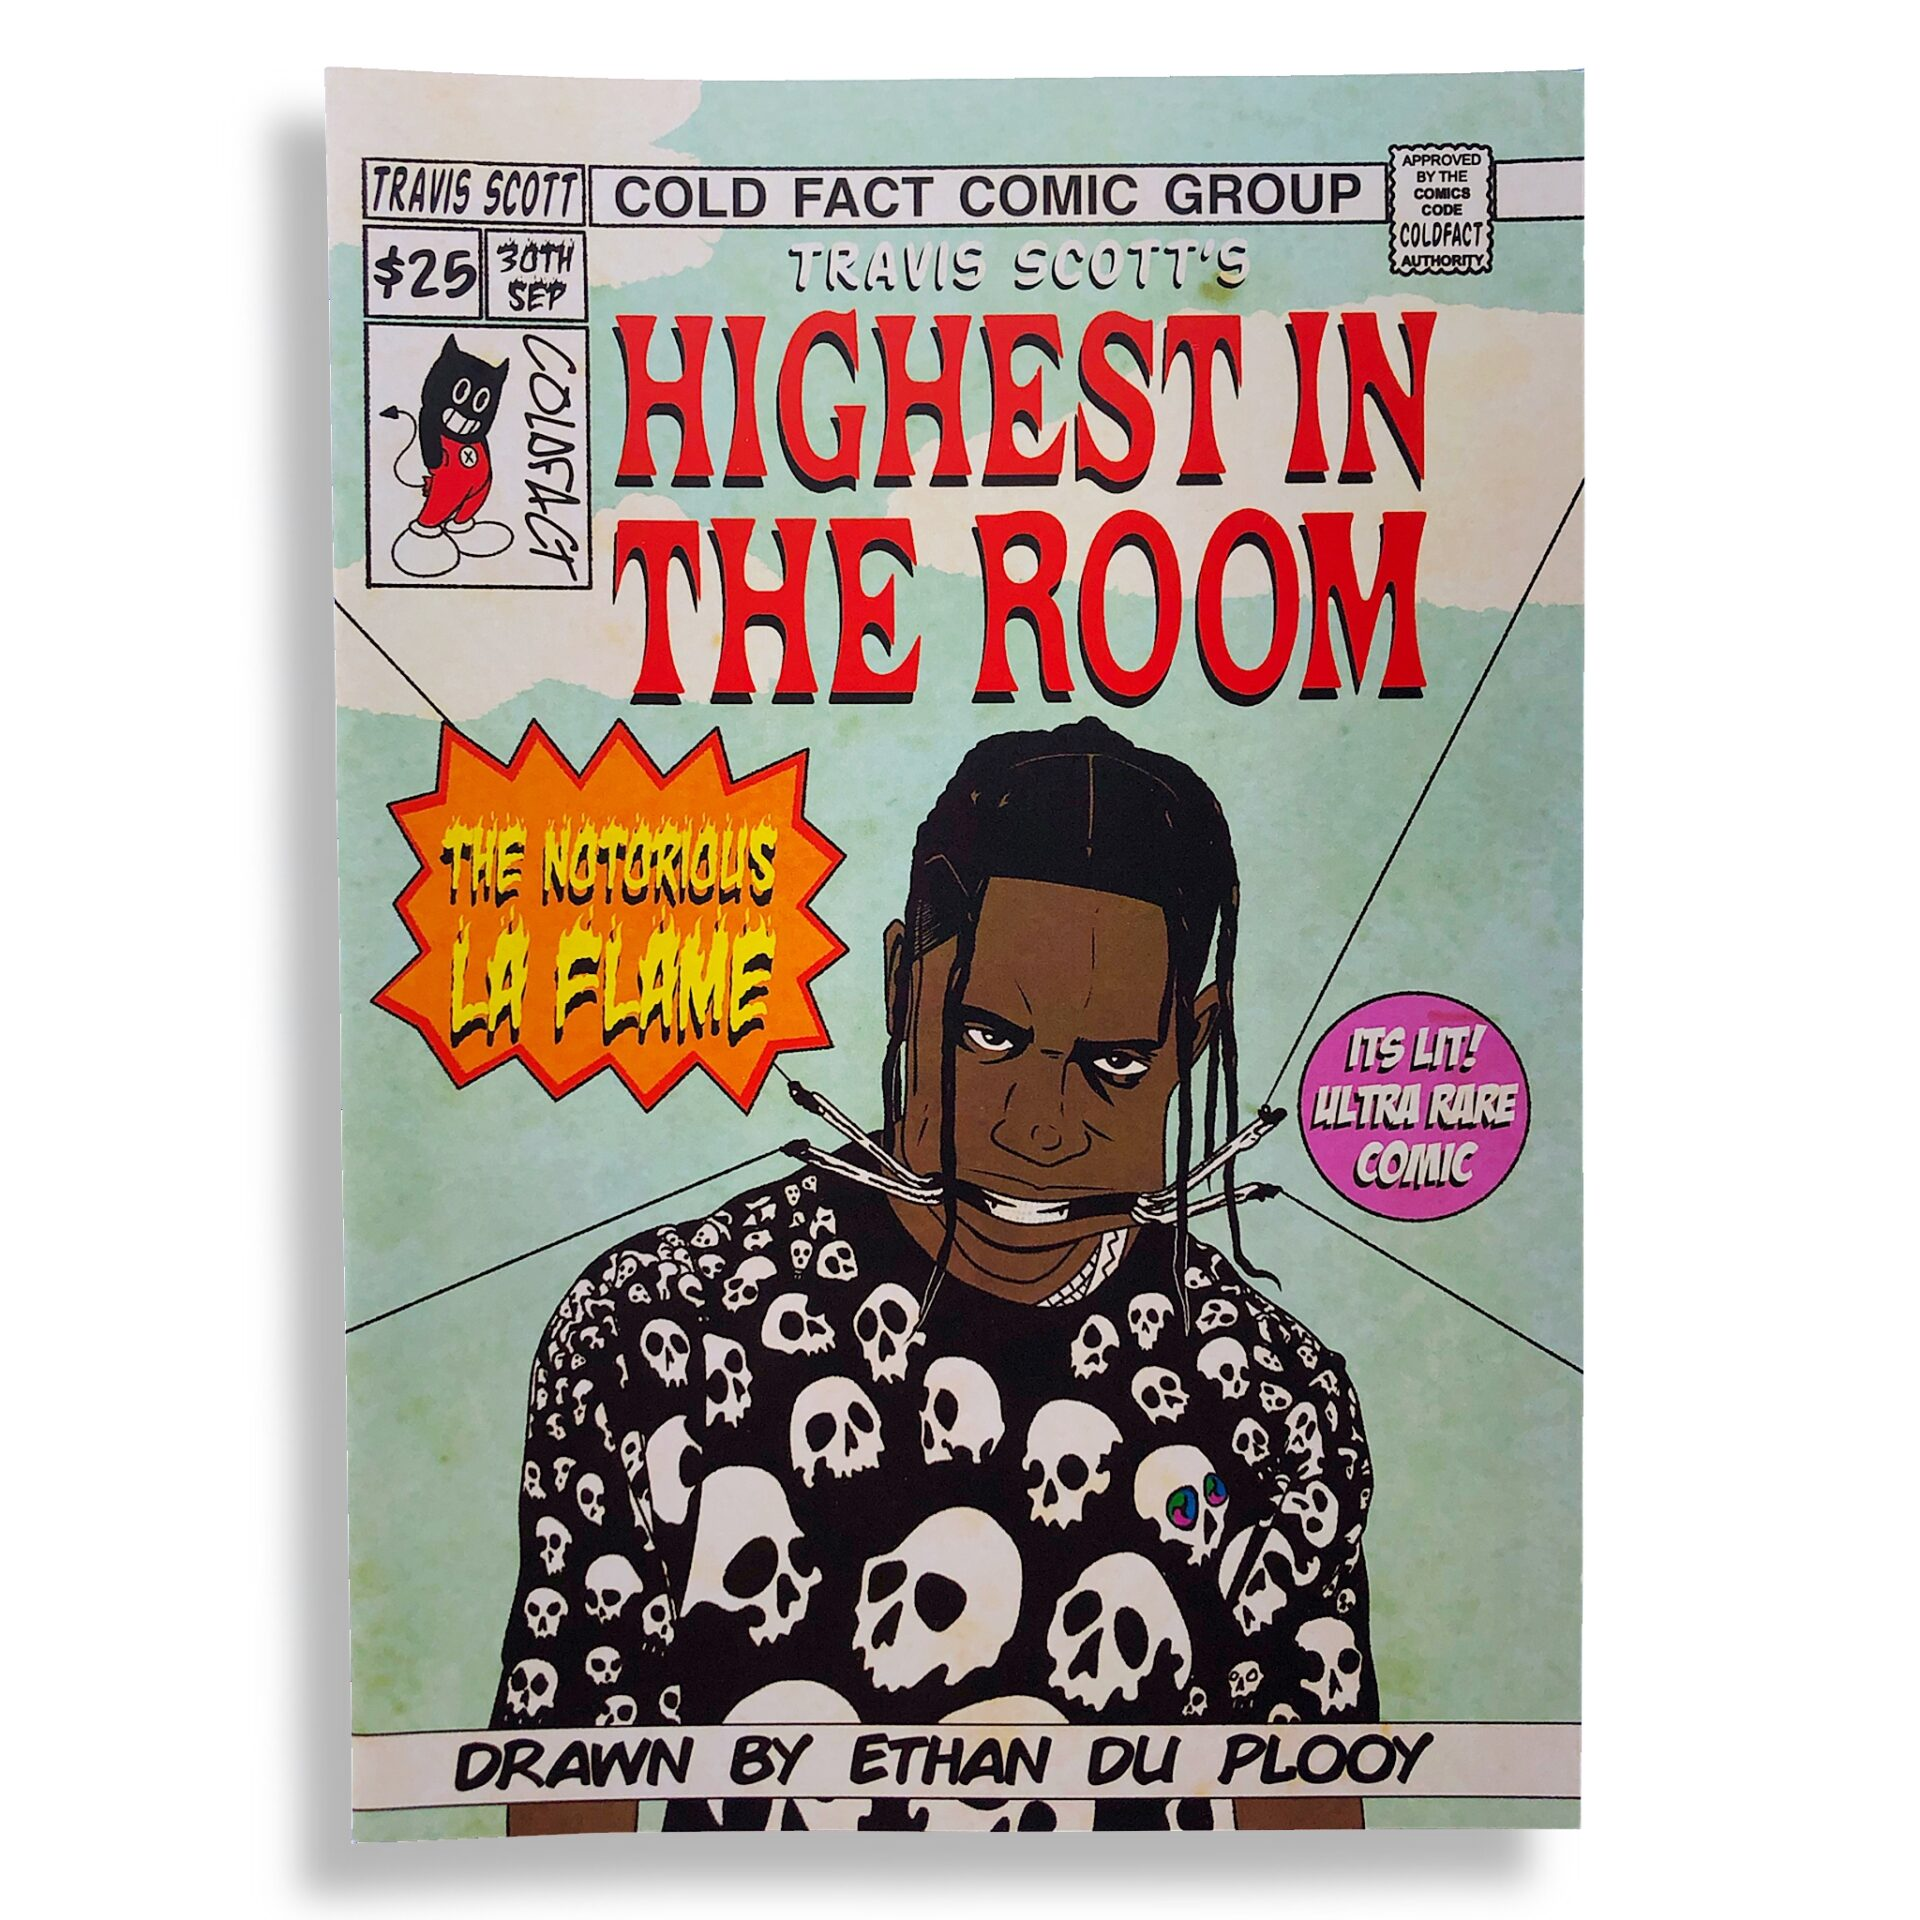 Sesh Monkey Turns Hip-Hop's Iconic Hits Into 12 Pages Comics 6